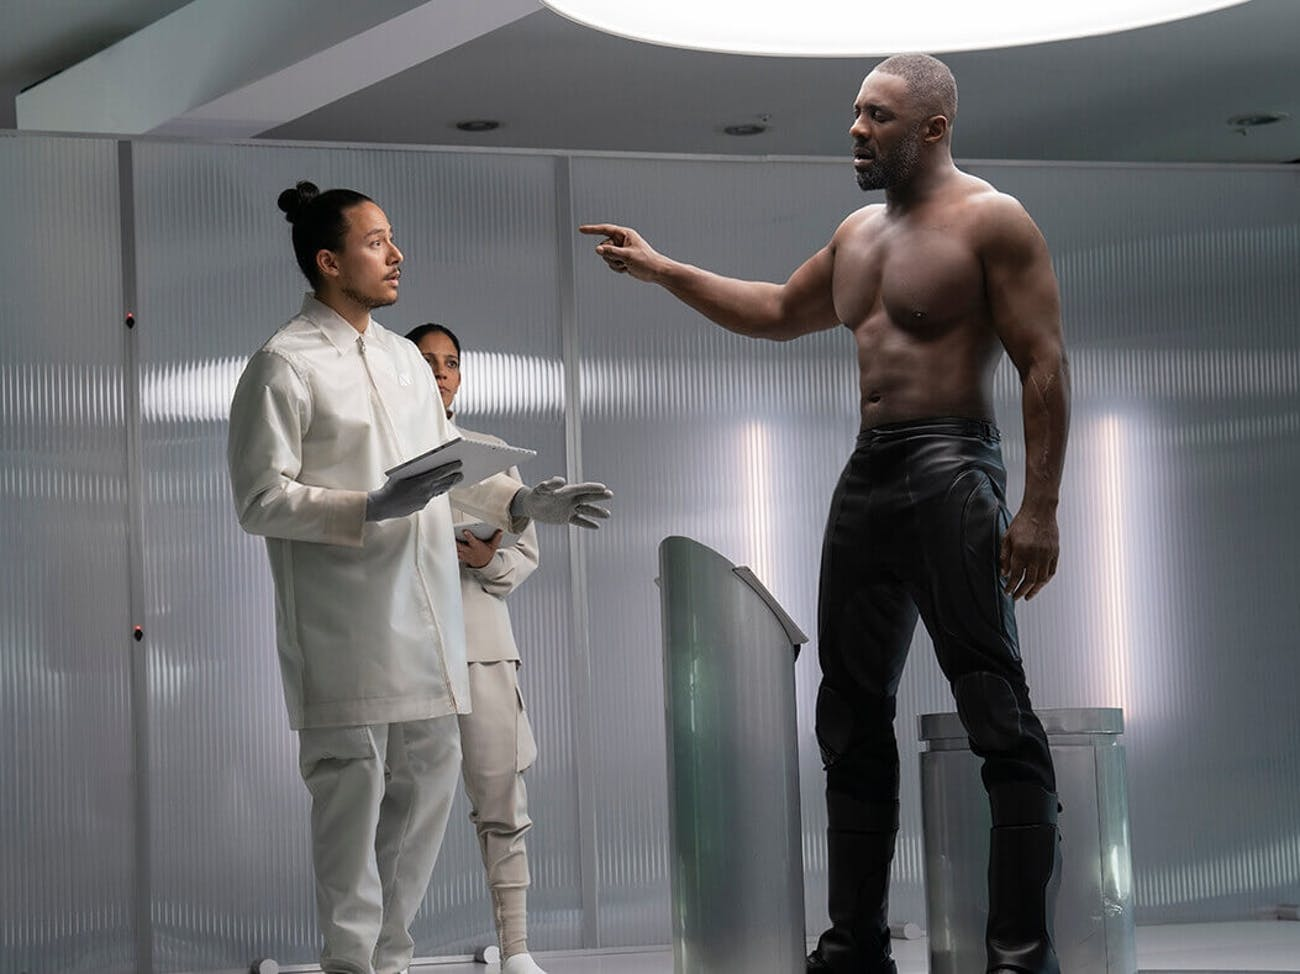 idris-elba-stars-in-hobbs--shaw-as-brixton-who-only-serves-as-a-lackey-for-the-mysterious-corp.jpeg